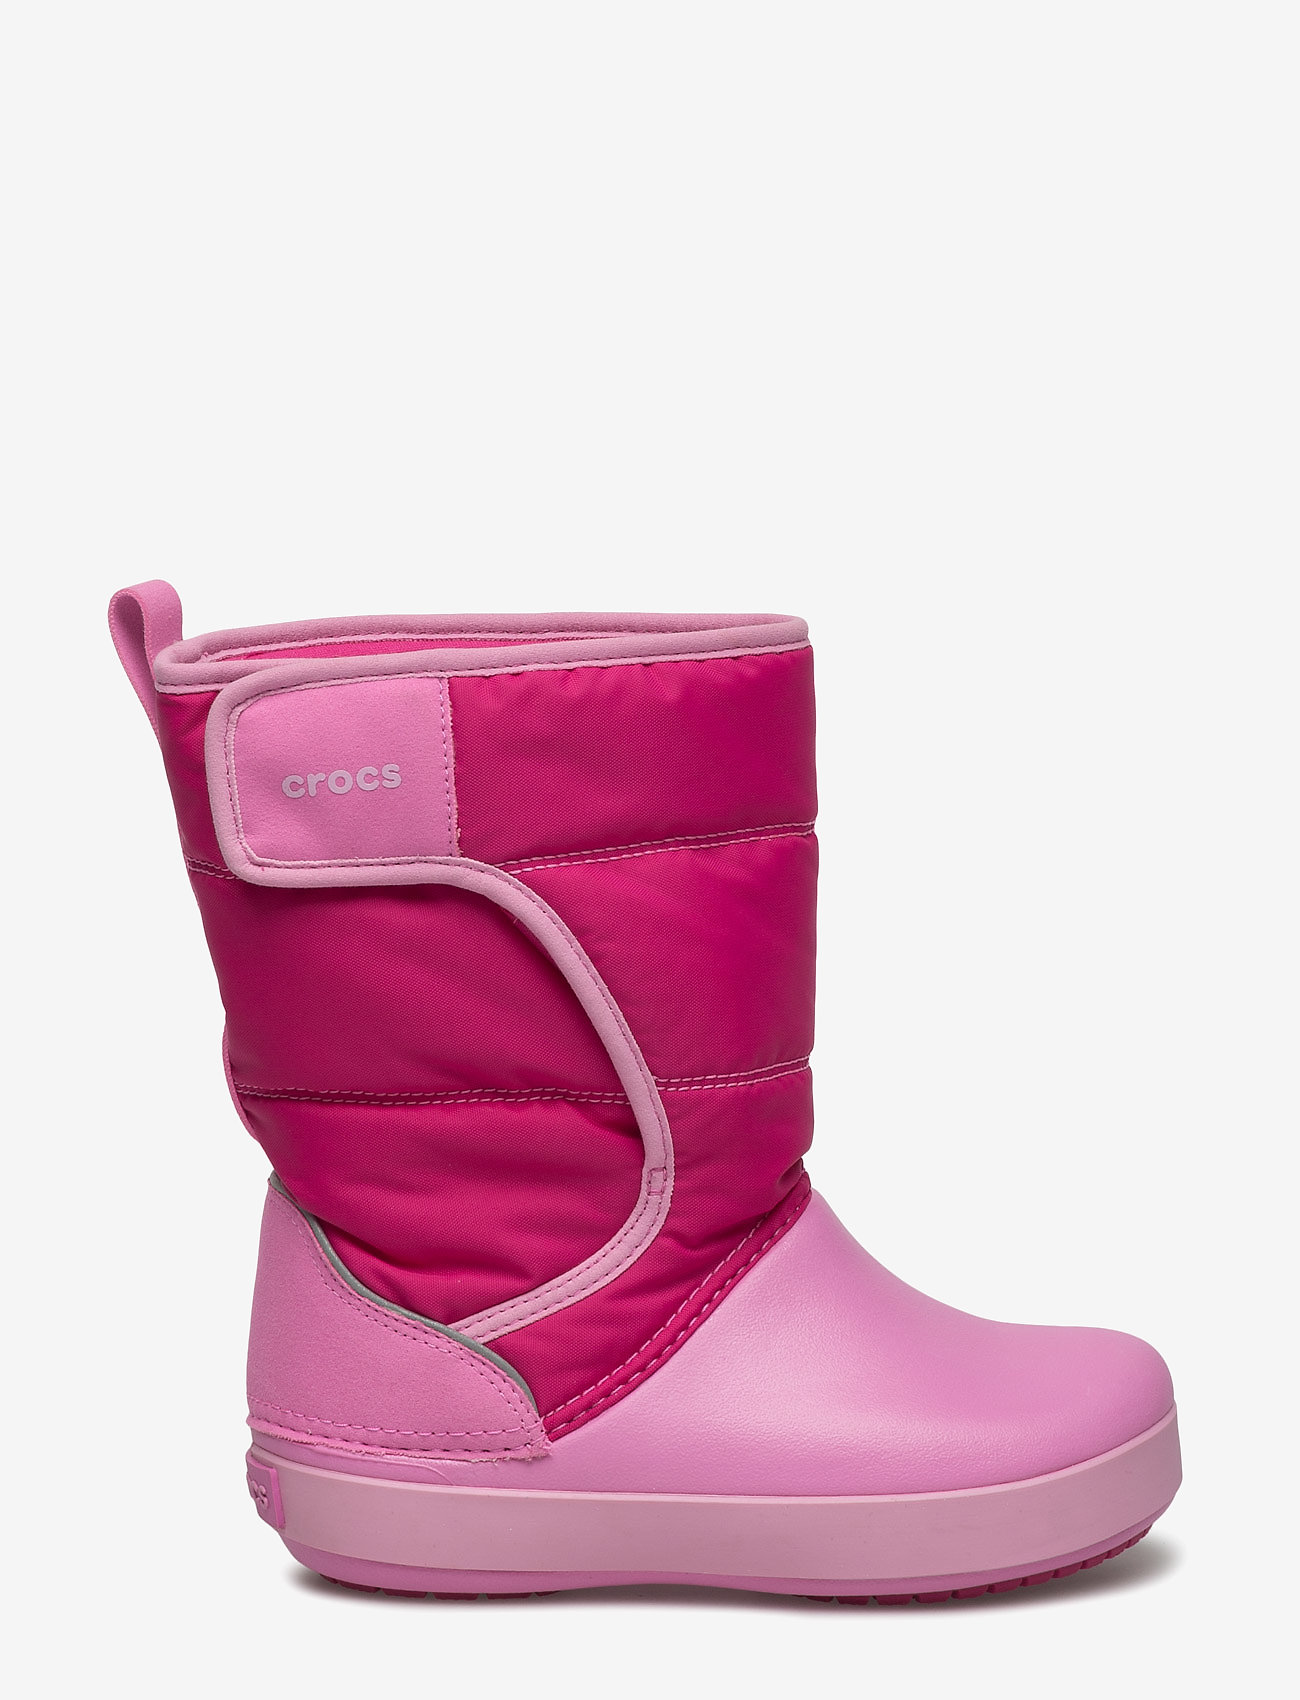 Crocs LodgePoint Talvikengät Lapset, candy pinkparty pink